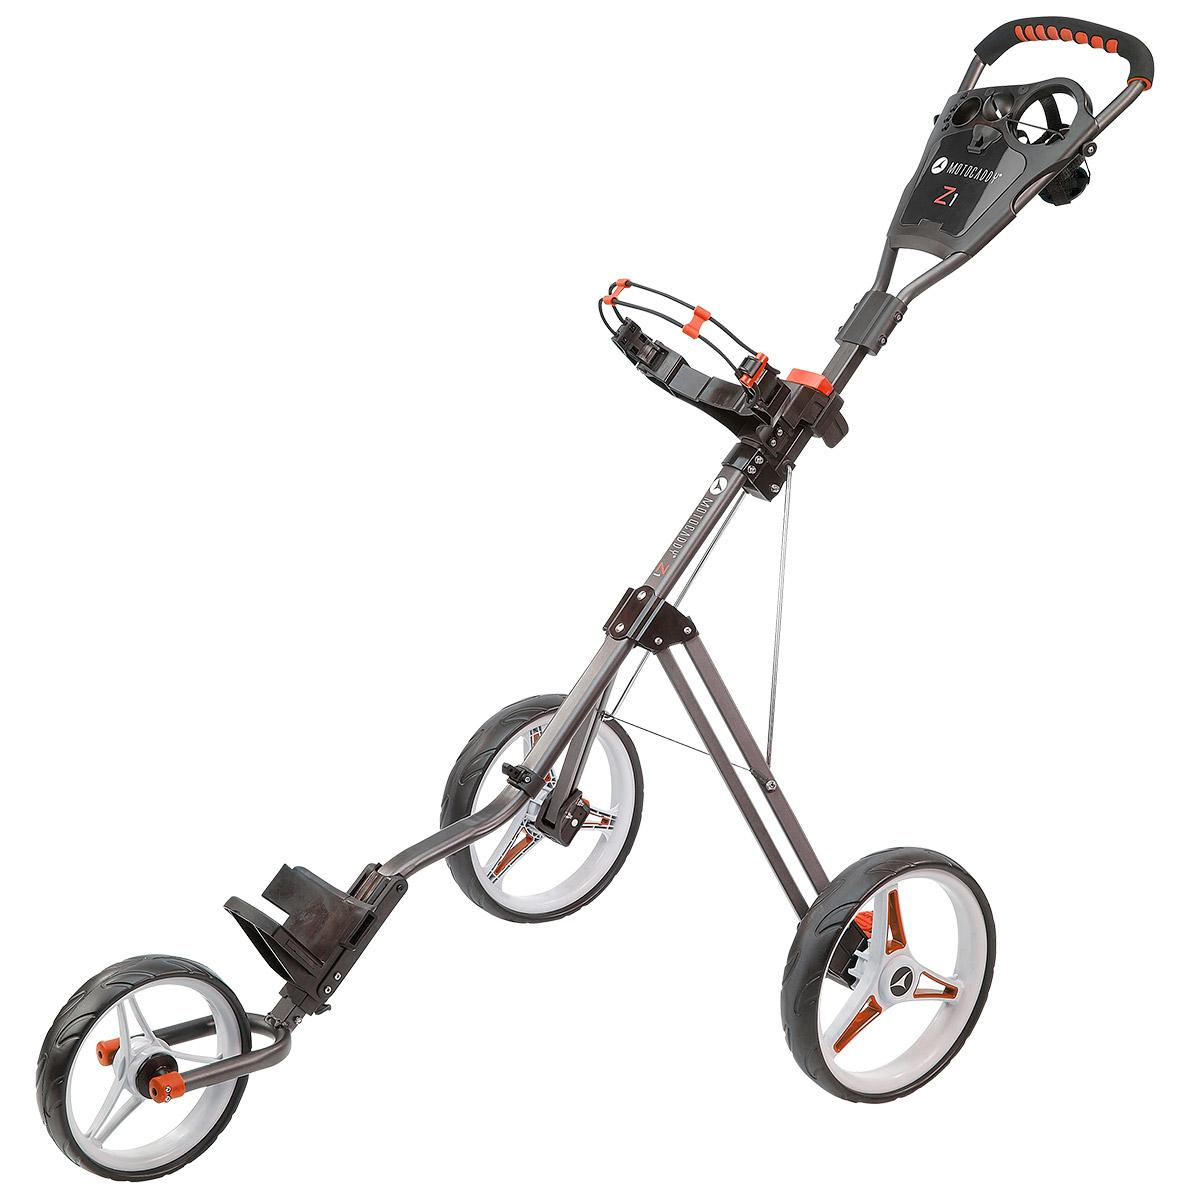 Motocadddy Z1 Trolley Red